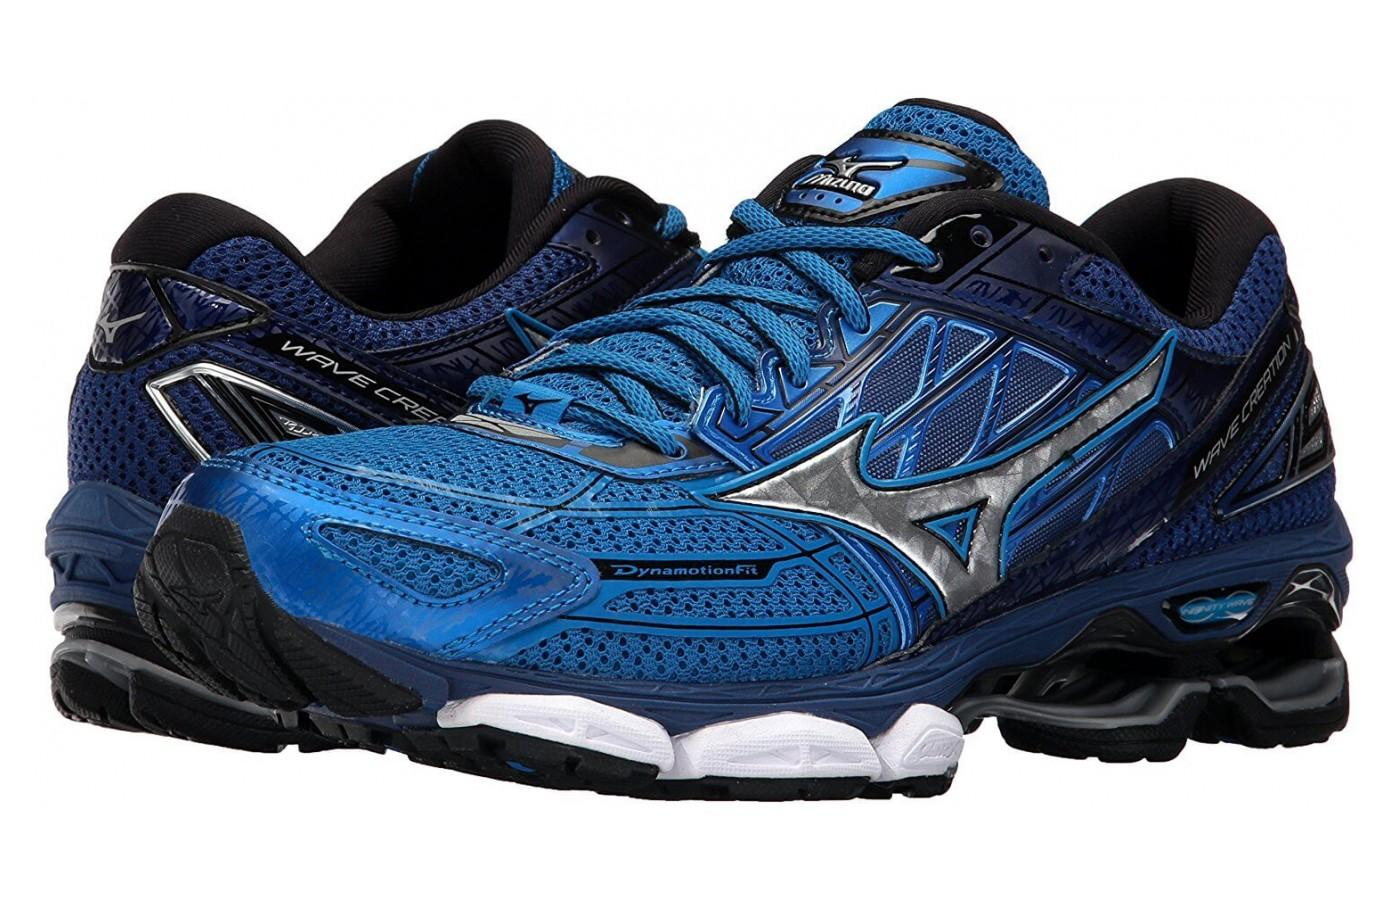 Mizuno Wave Creation 19 is the latest installment in a long-running and well-respected series of daily high-mileage road trainers